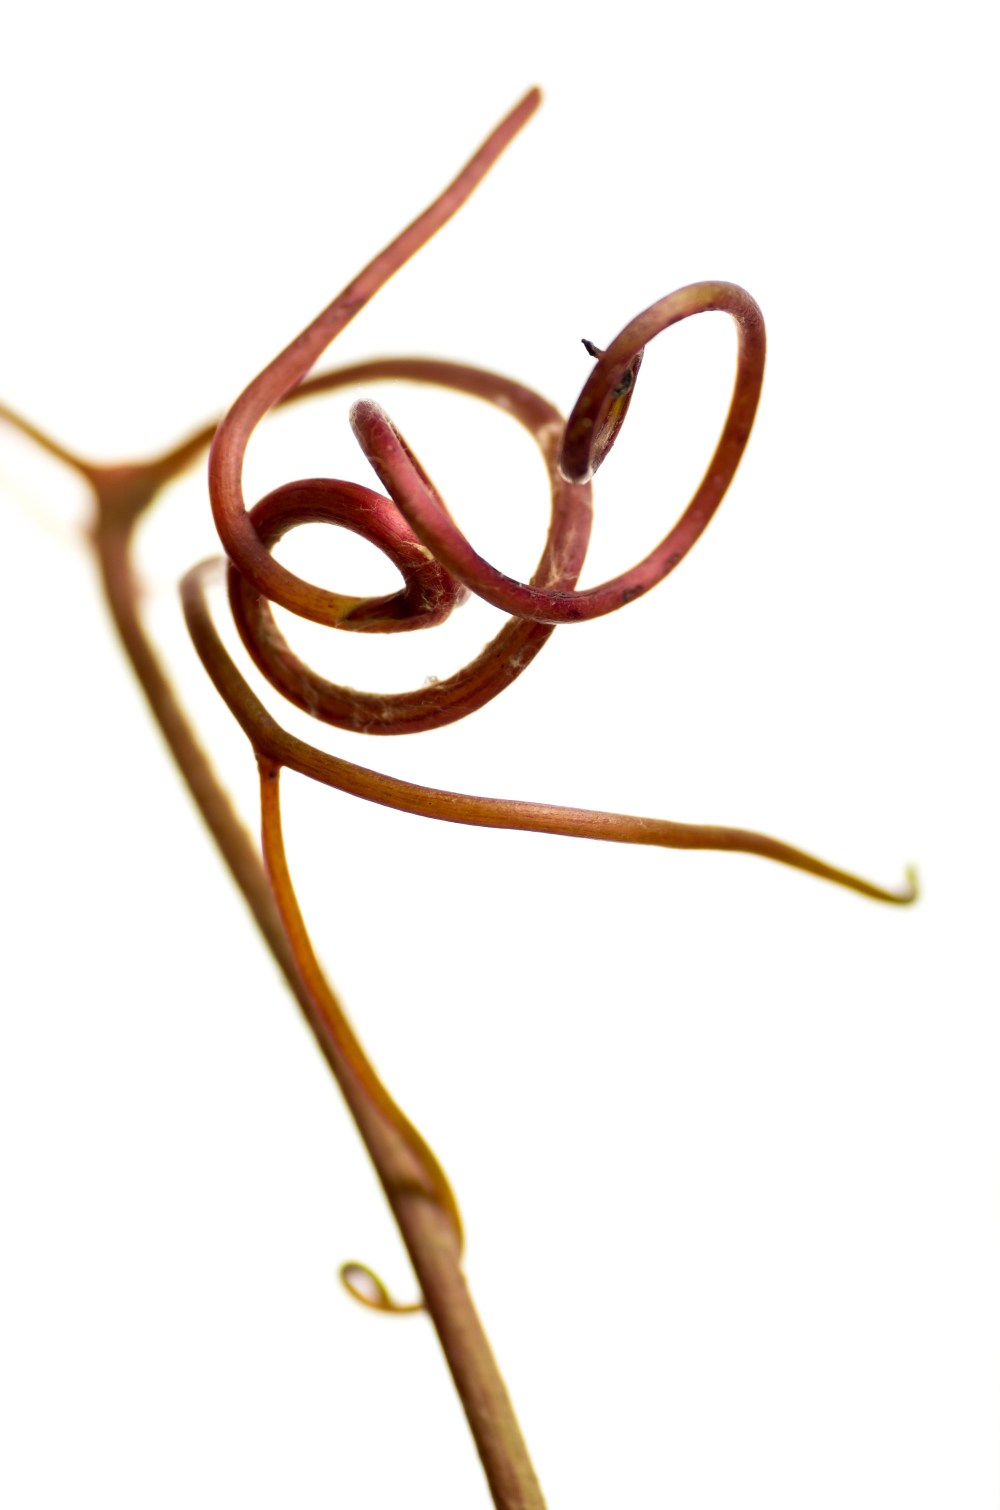 Vitis coignetiae Ornamental Vine tendril by Marius Grose